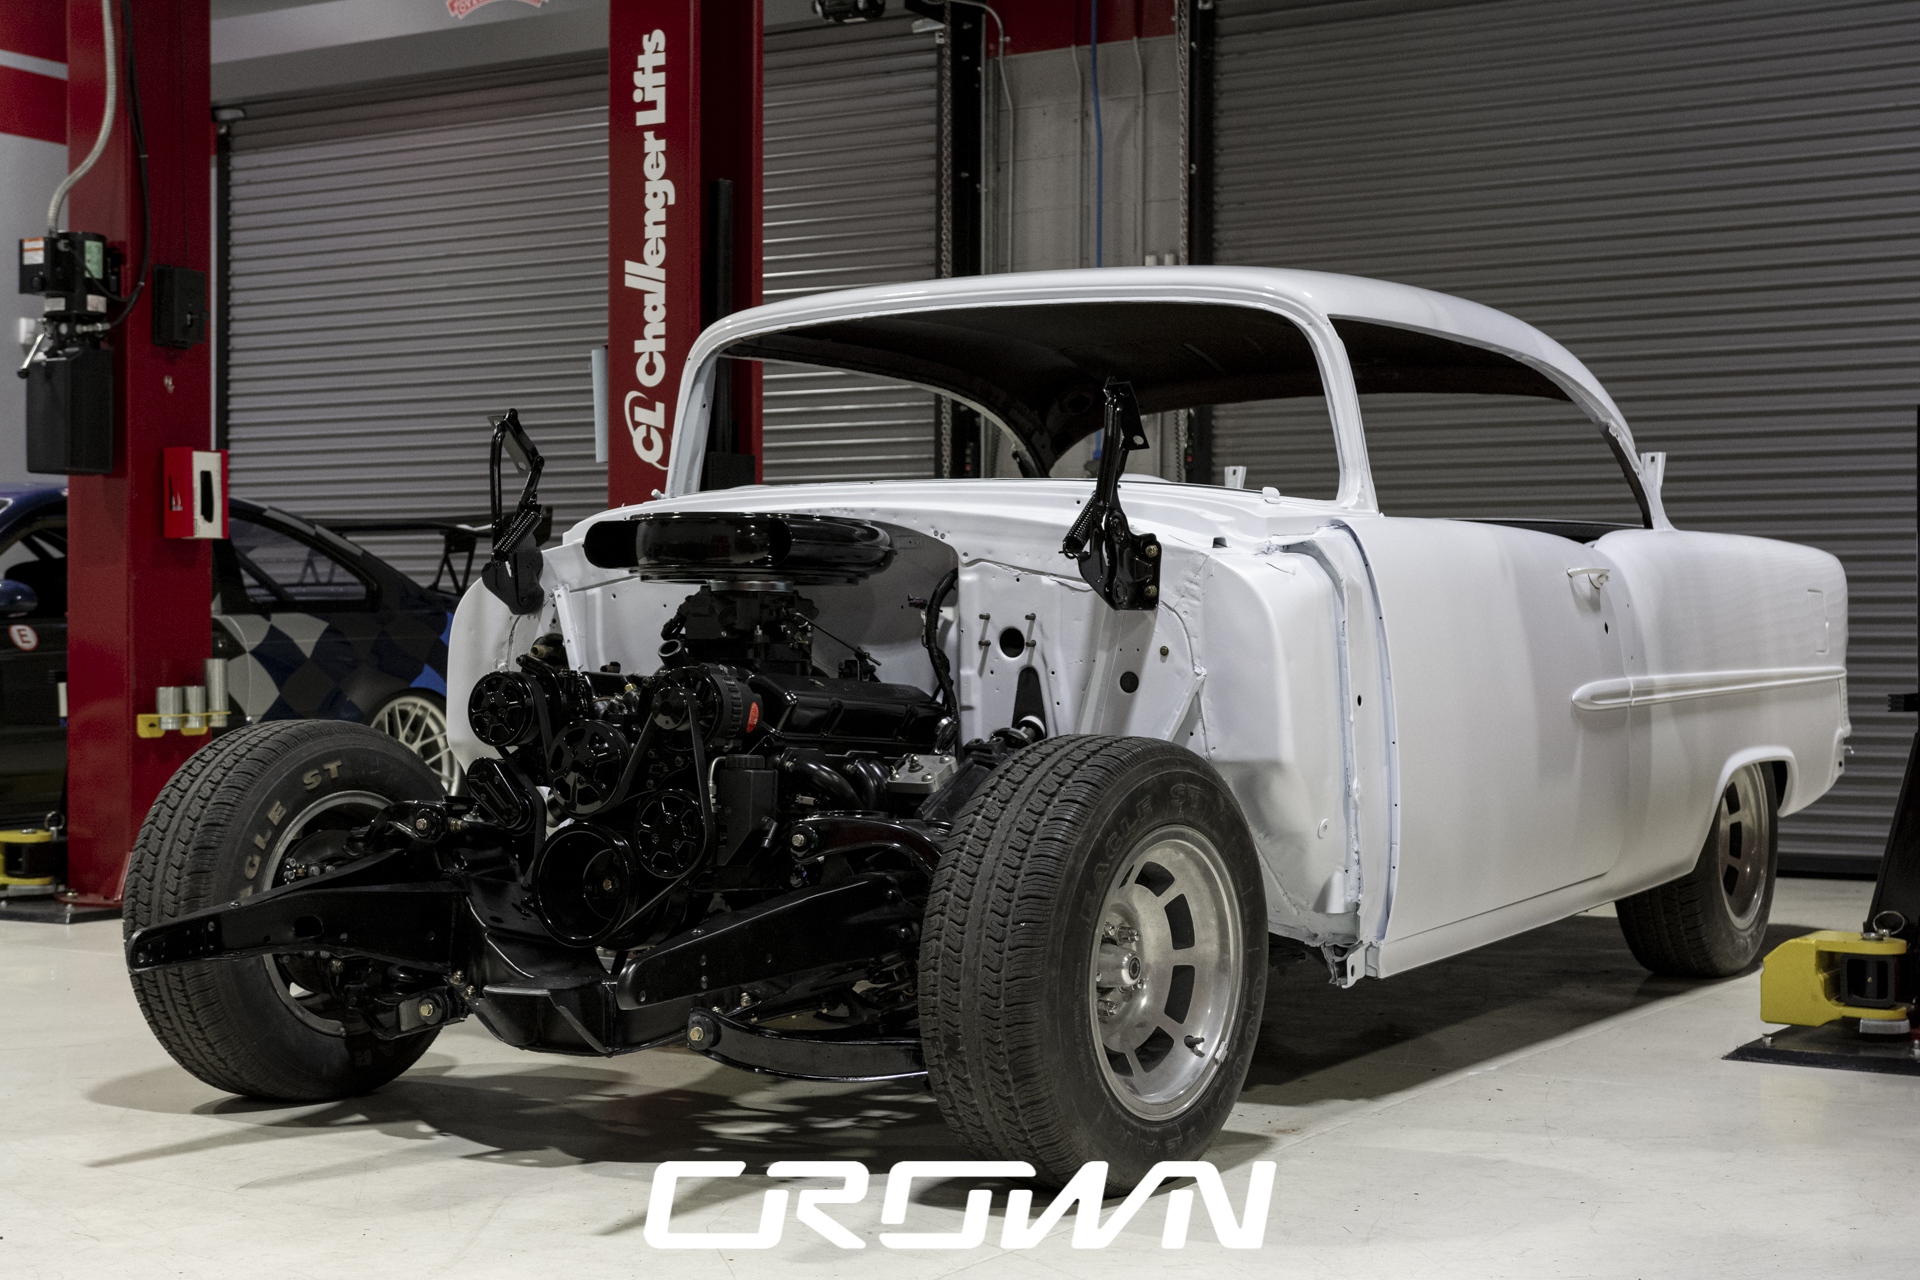 1955 Chevrolet Bel-Air Resto-Mod Update